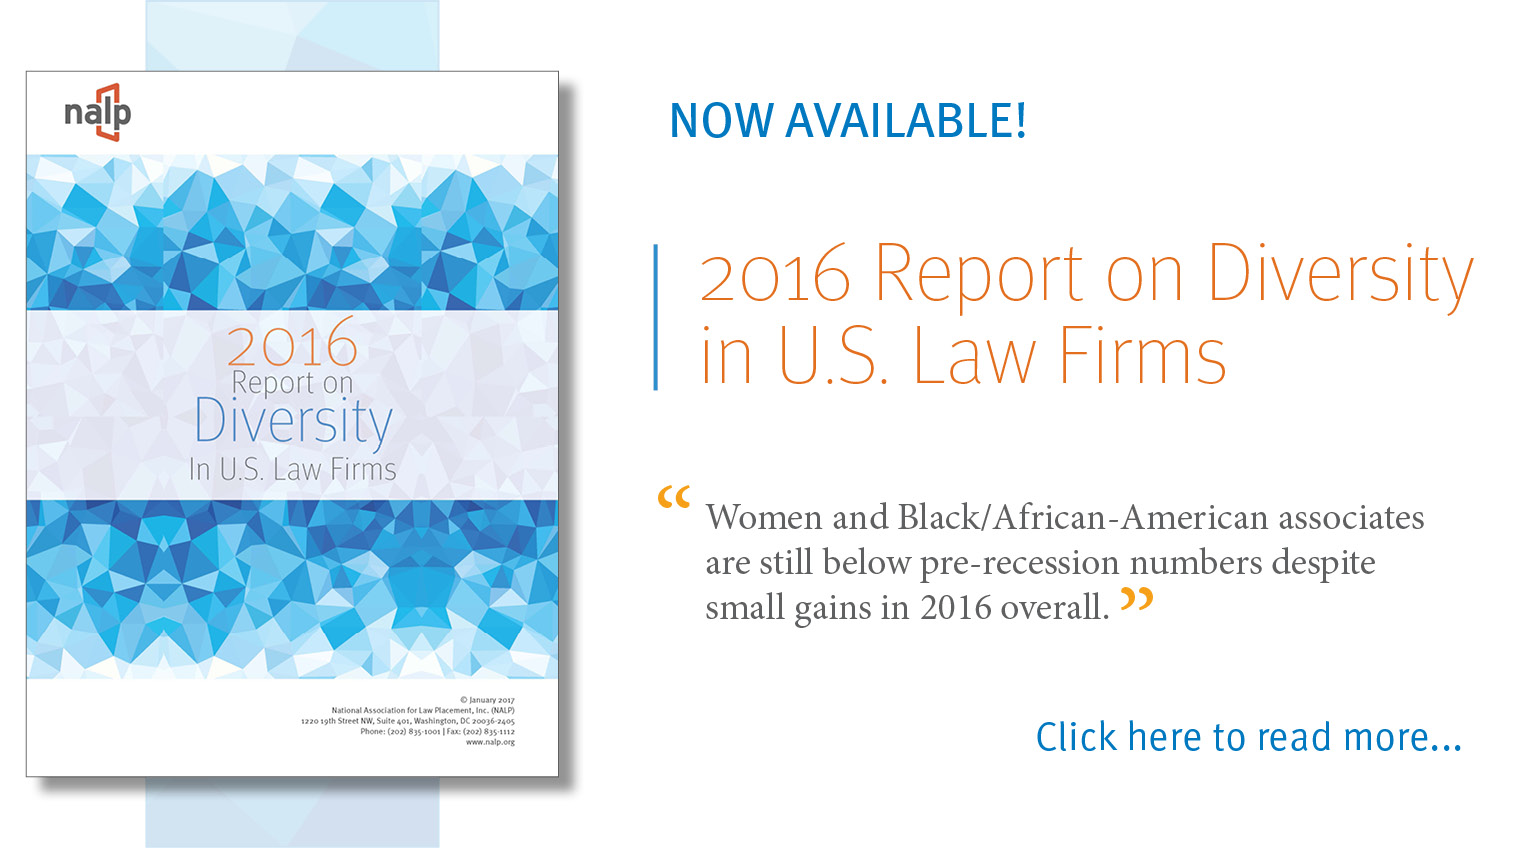 2016 Report on Diversity in U.S. Law Firms Feature Image